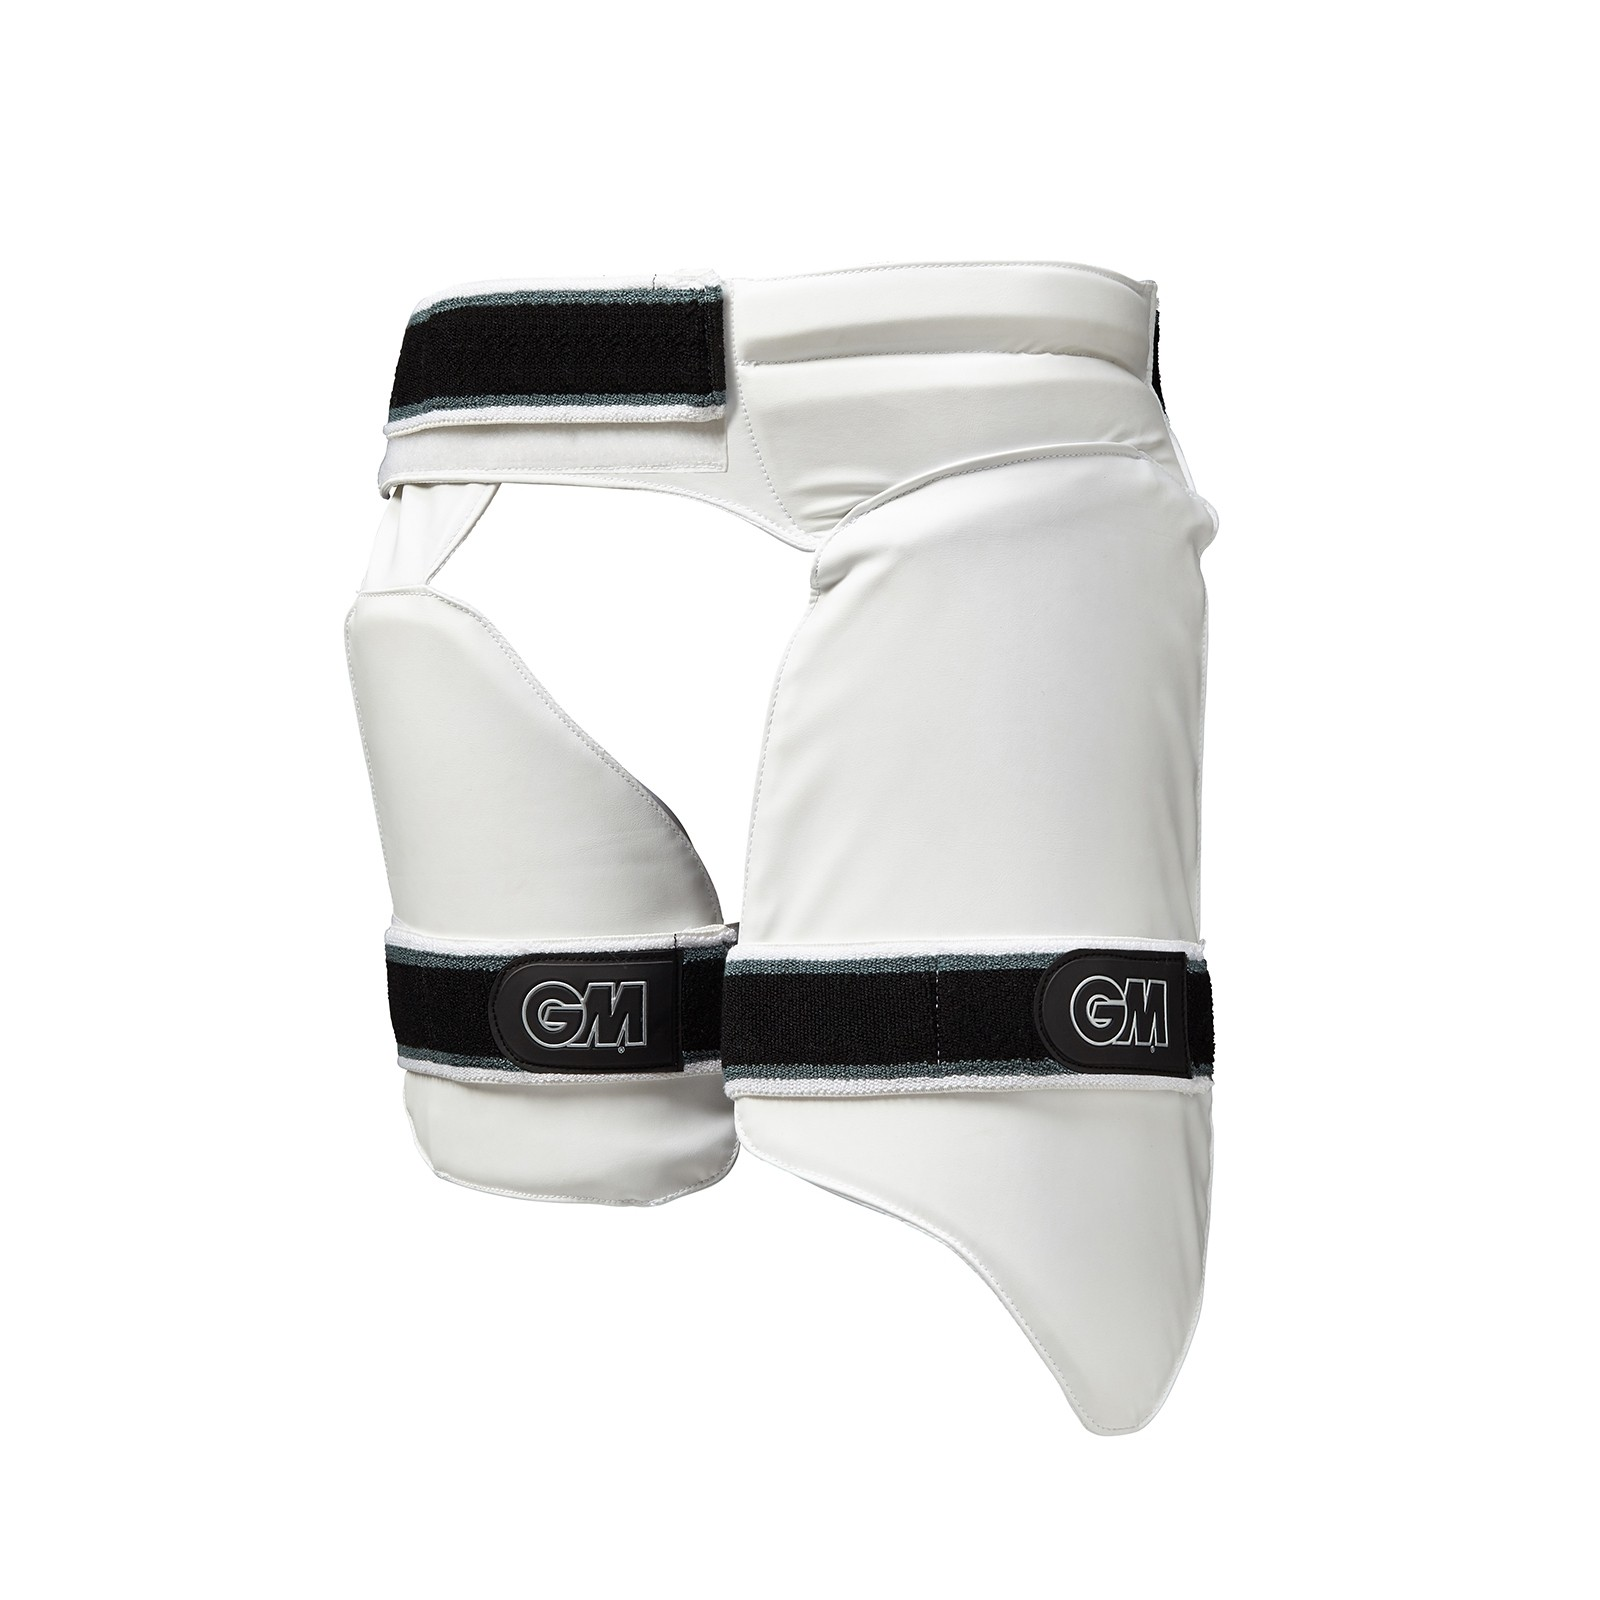 Players Thigh Pad Set 2019